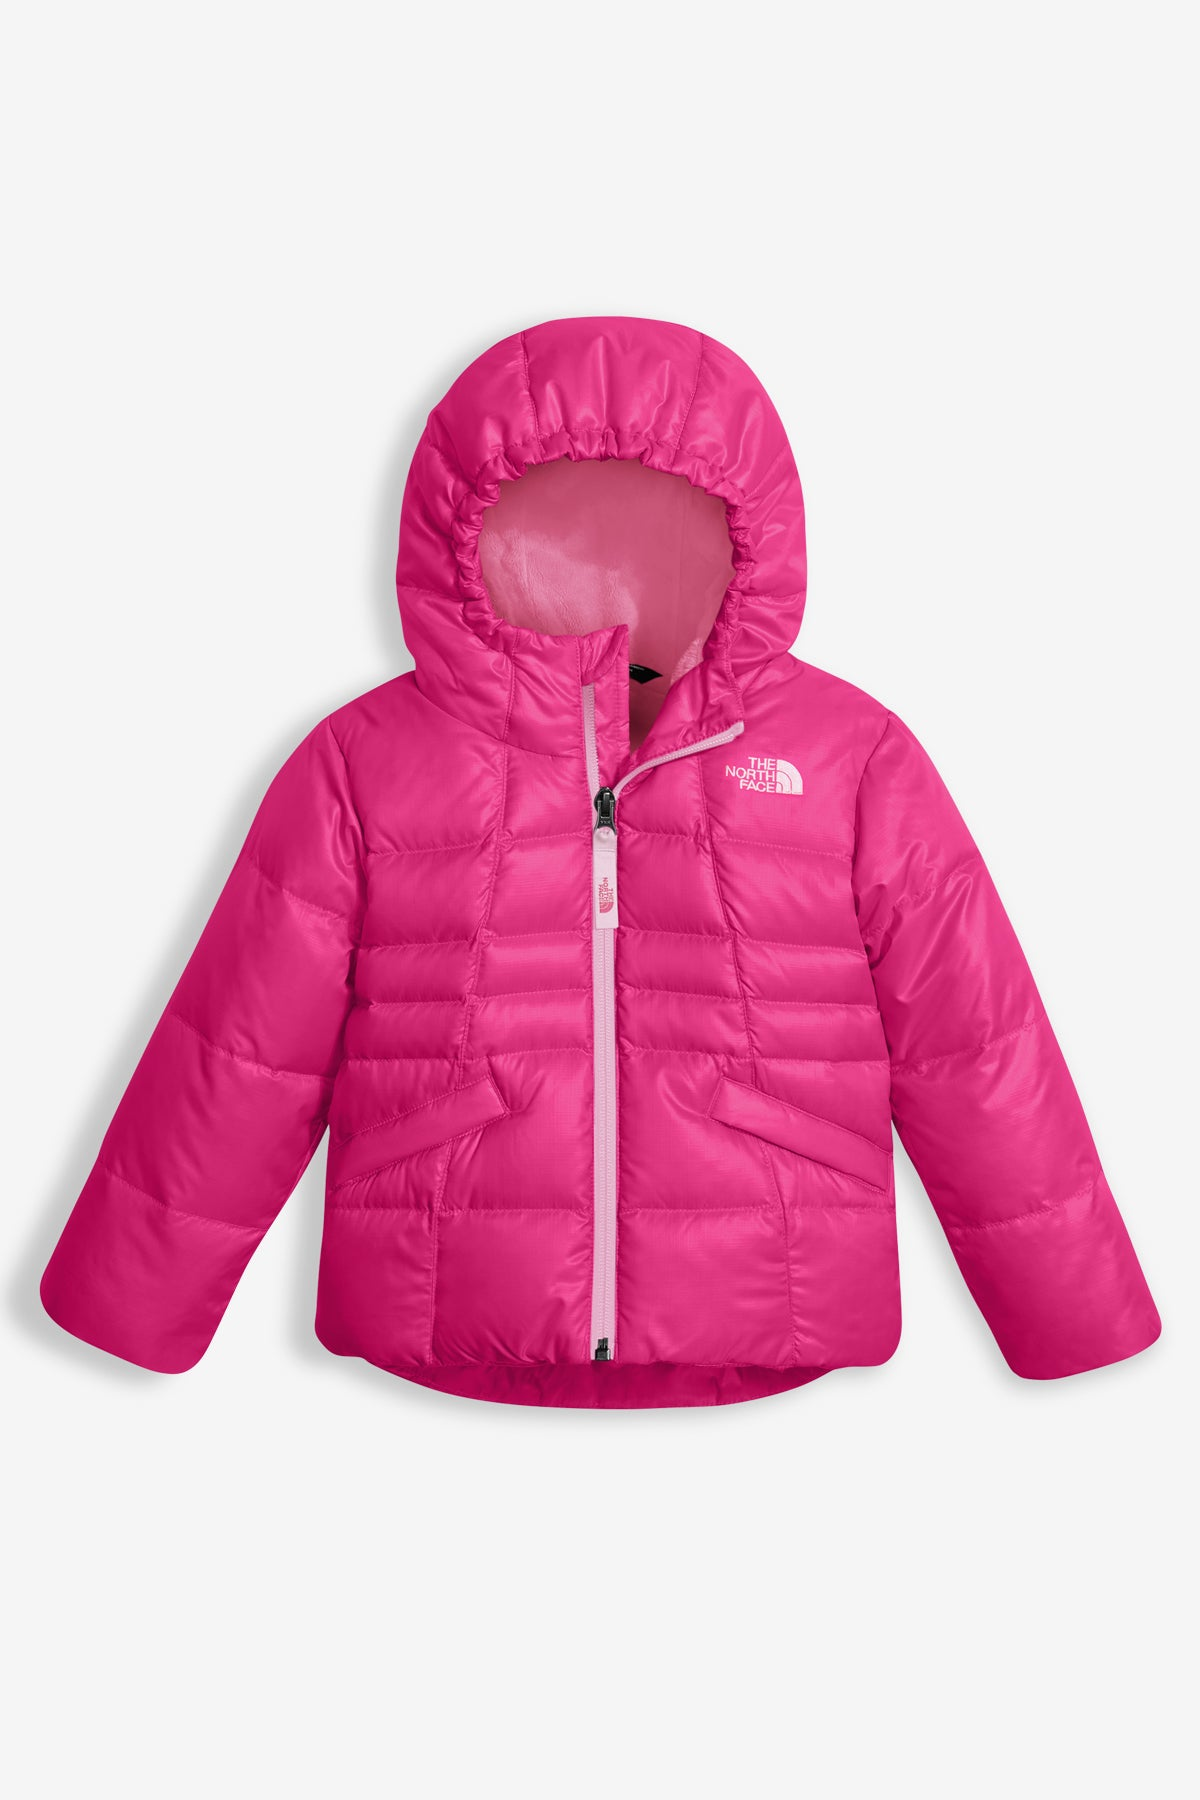 The North Face Little Girls Moondoggy Jacket - Pink e9052892c